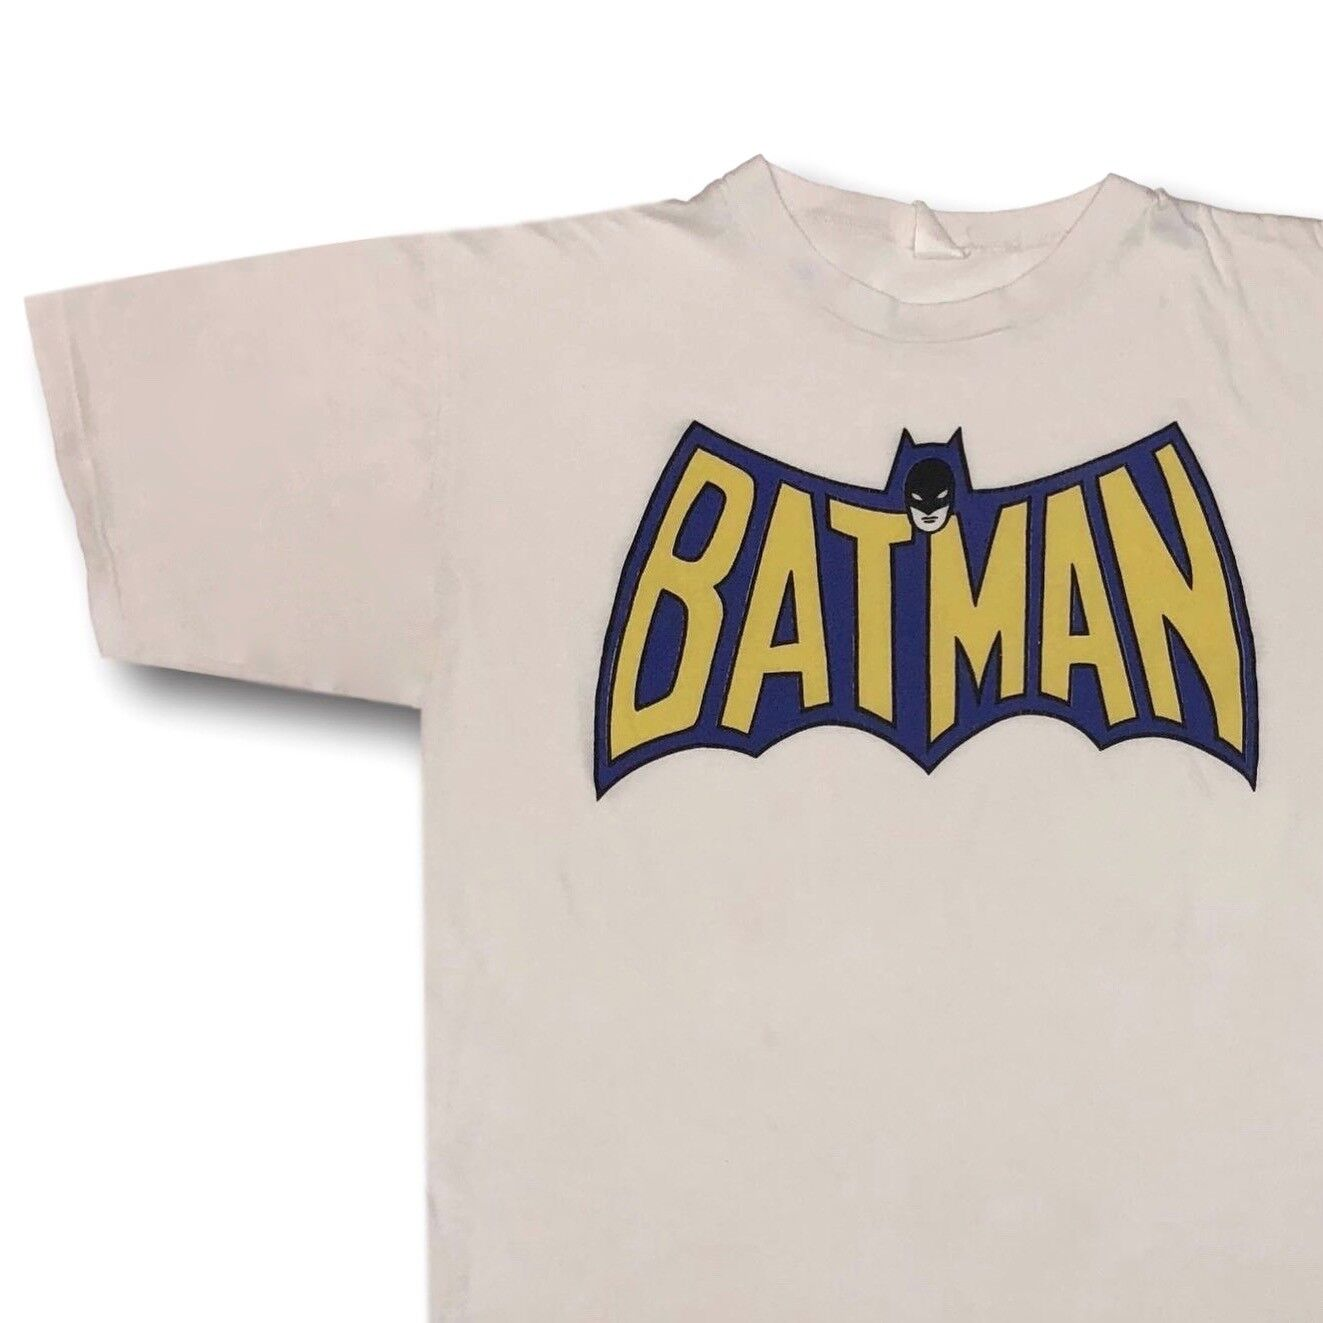 Vintage 70's BATMAN Adventures of Batman 50 50 Graphic Tee T-Shirt Sz L  Robin